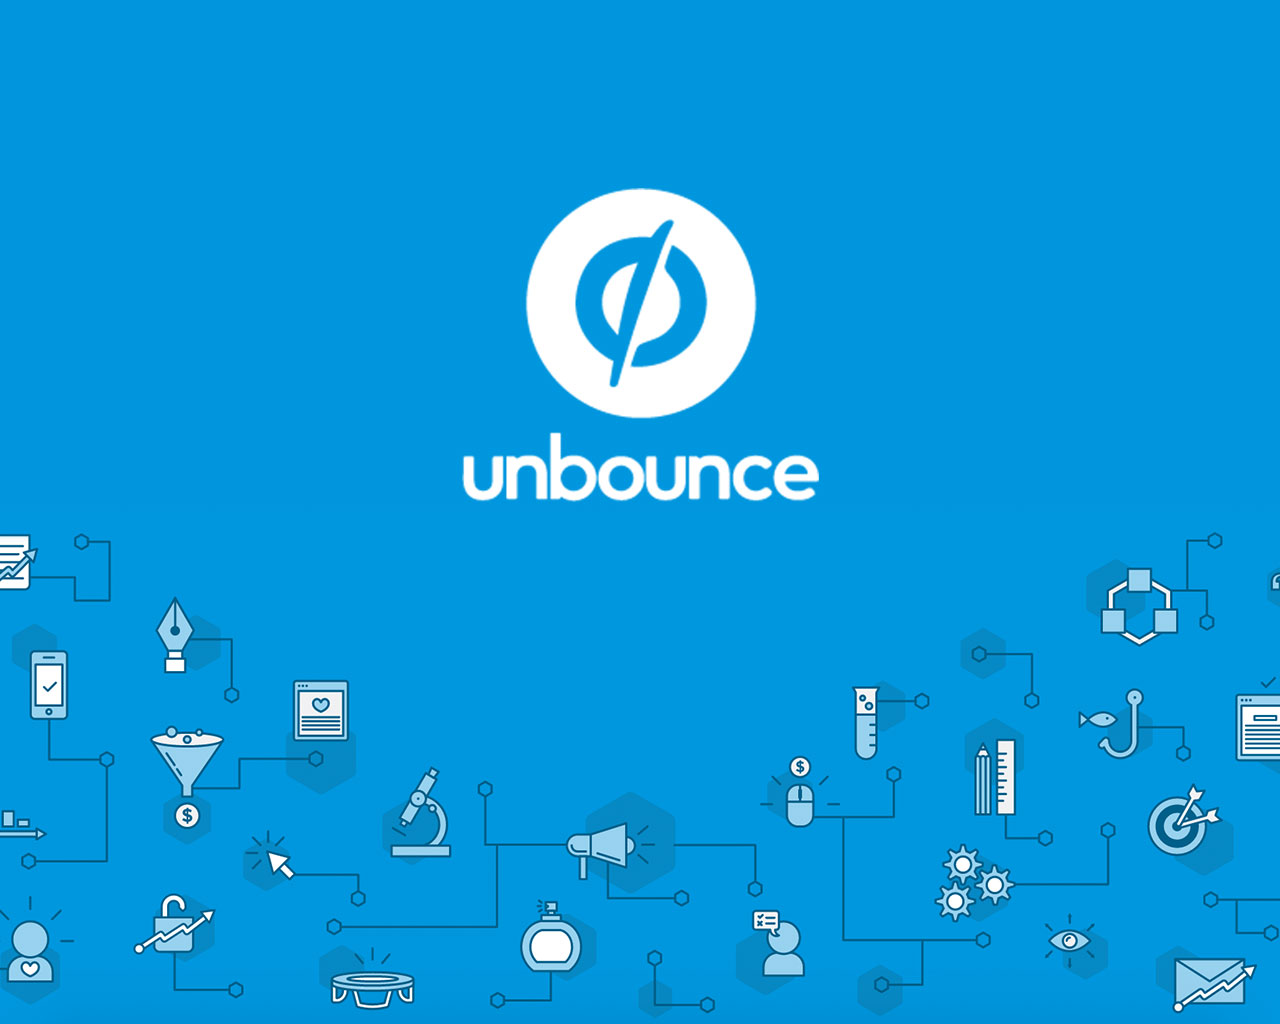 Unbounce logo clipart banner royalty free stock Custom Landing Pages Design banner royalty free stock